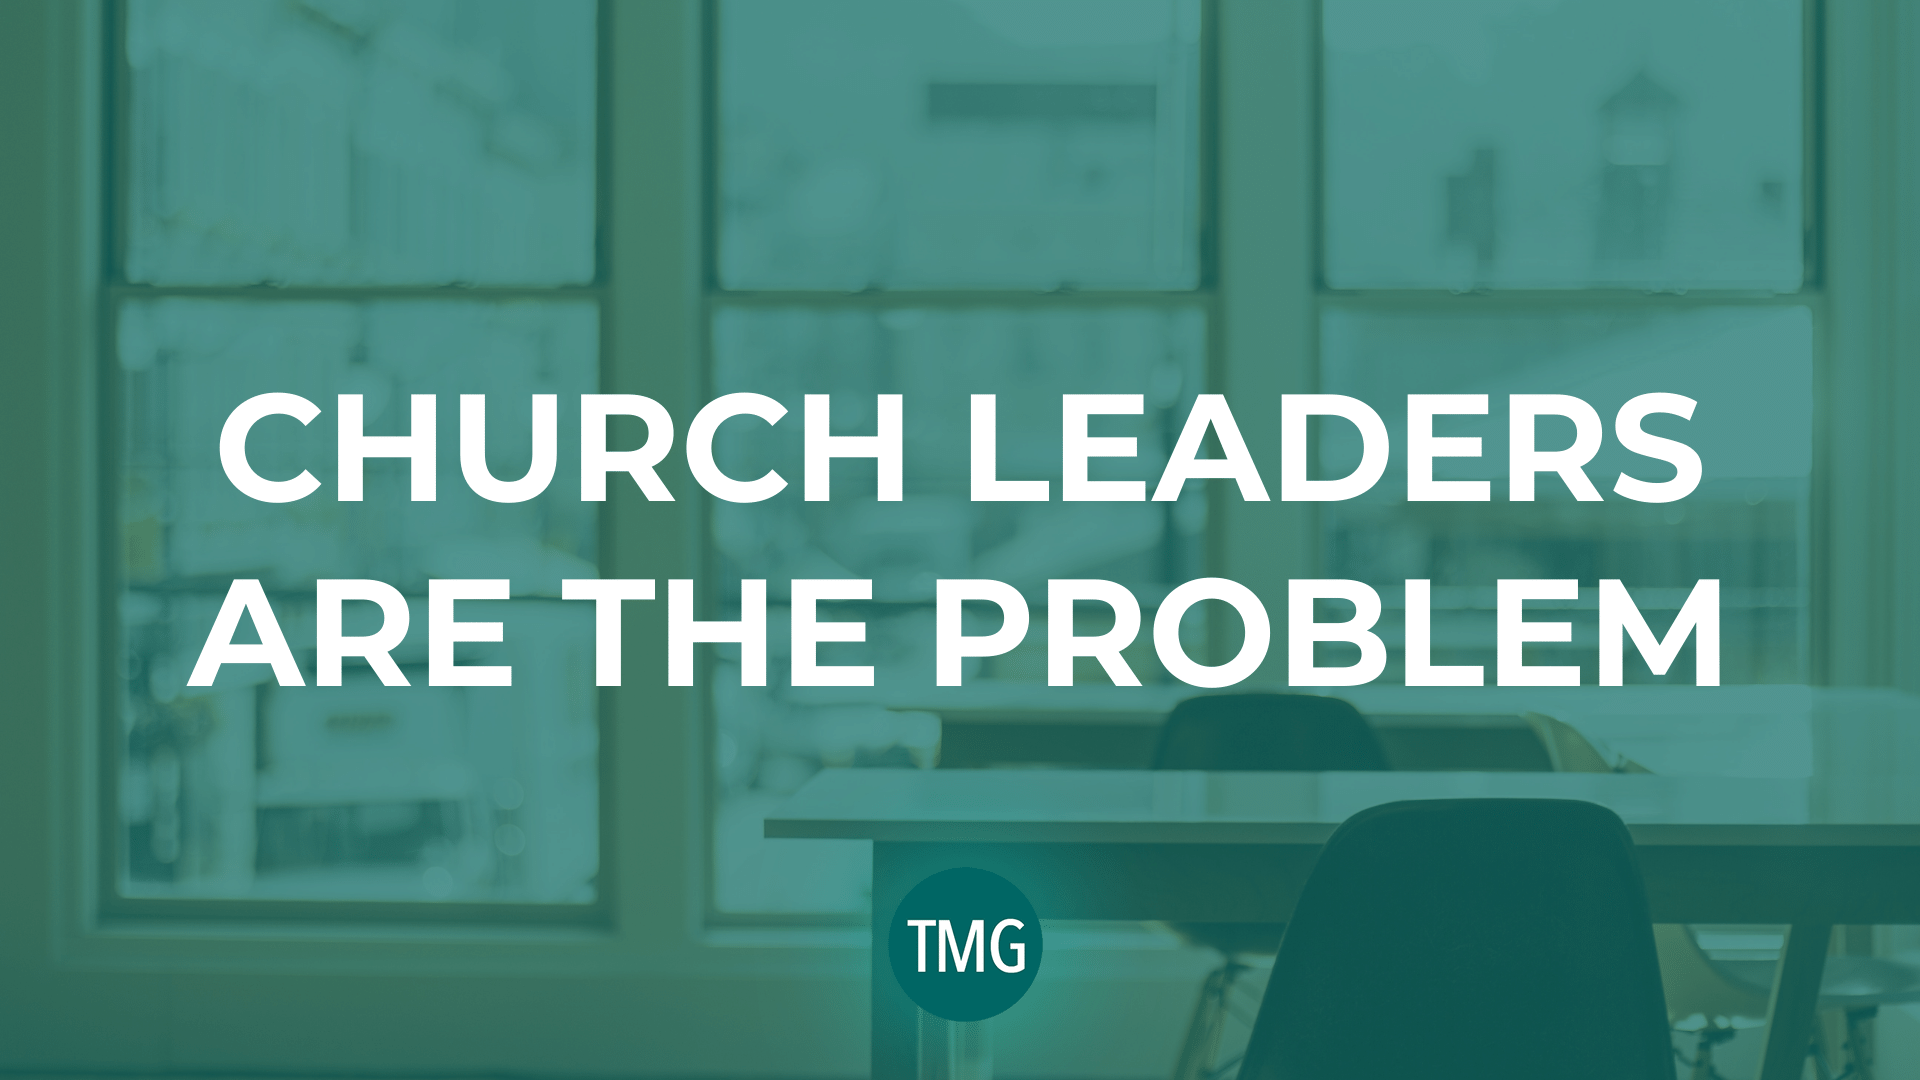 church-leaders-are-the-problem-header-image